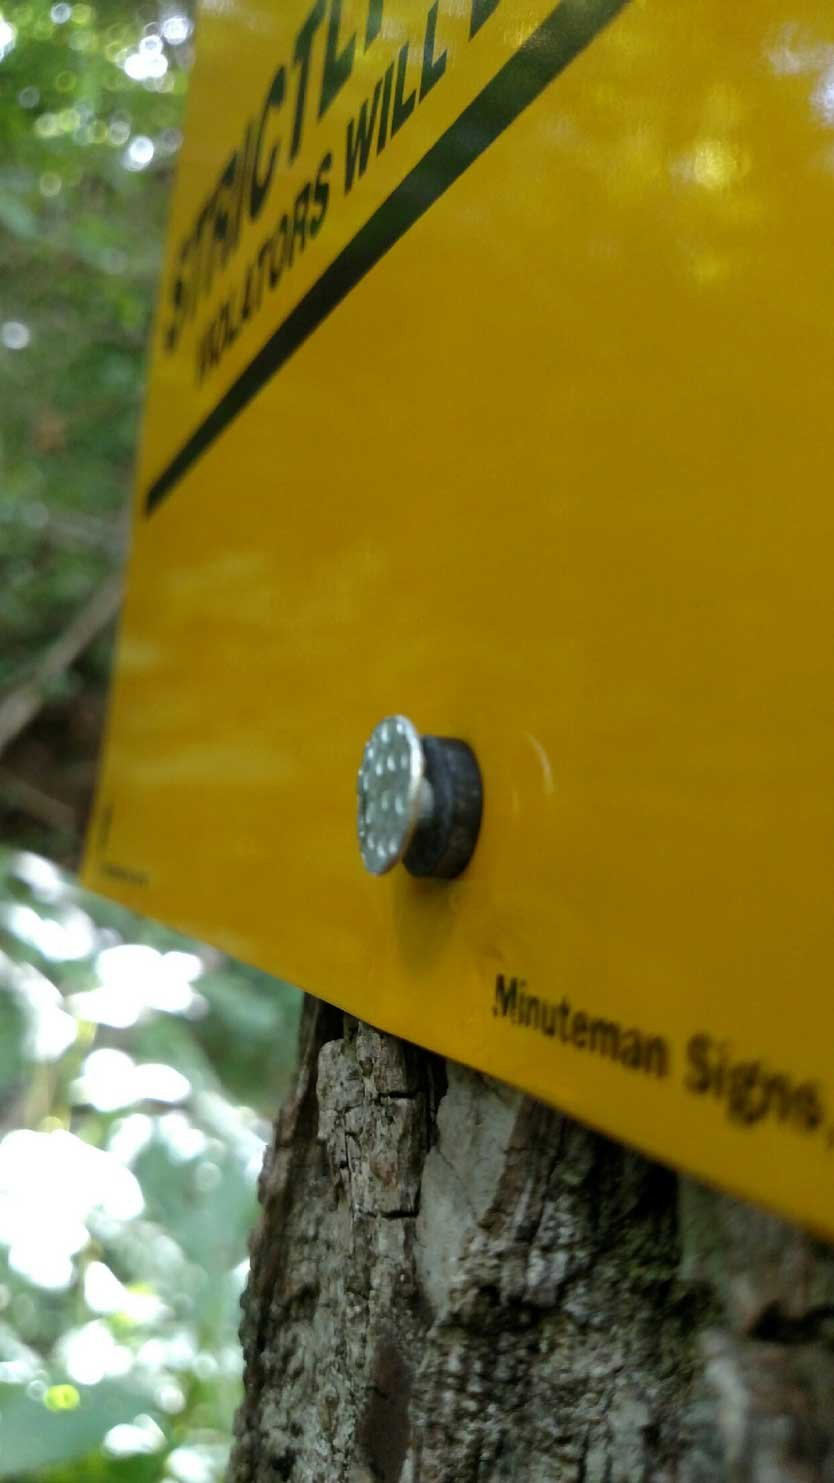 25 Count Aluminum Posted Private Property Signs with your custom information added (Yellow)